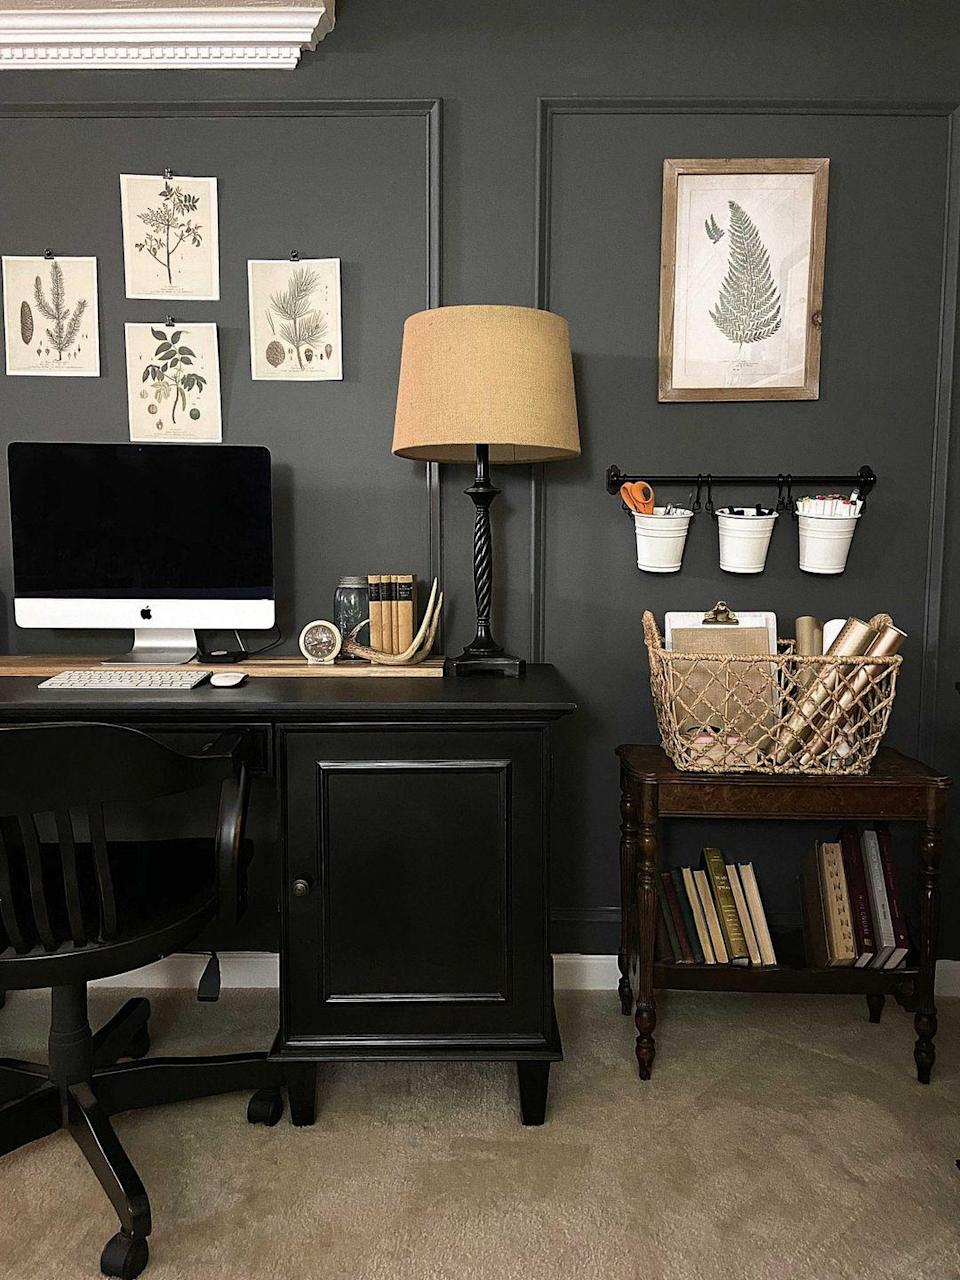 """<p>Working (or crafting!) from home without a defined workspace can make your job feel way more stressful. Enter this sophisticated basement office/craftroom, which features an accent wall in a soothing stone tone. </p><p><strong>See more at <a href=""""https://www.snazzylittlethings.com/accent-wall-ideas/"""" rel=""""nofollow noopener"""" target=""""_blank"""" data-ylk=""""slk:Snazzy Little Things"""" class=""""link rapid-noclick-resp"""">Snazzy Little Things</a>. </strong></p><p><a class=""""link rapid-noclick-resp"""" href=""""https://go.redirectingat.com?id=74968X1596630&url=https%3A%2F%2Fwww.walmart.com%2Fip%2FGlidden-One-Coat-Interior-Paint-Primer-Stepping-Stone%2F289554052&sref=https%3A%2F%2Fwww.redbookmag.com%2Fhome%2Fg36061437%2Fbasement-ideas%2F"""" rel=""""nofollow noopener"""" target=""""_blank"""" data-ylk=""""slk:SHOP PAINT"""">SHOP PAINT</a></p>"""